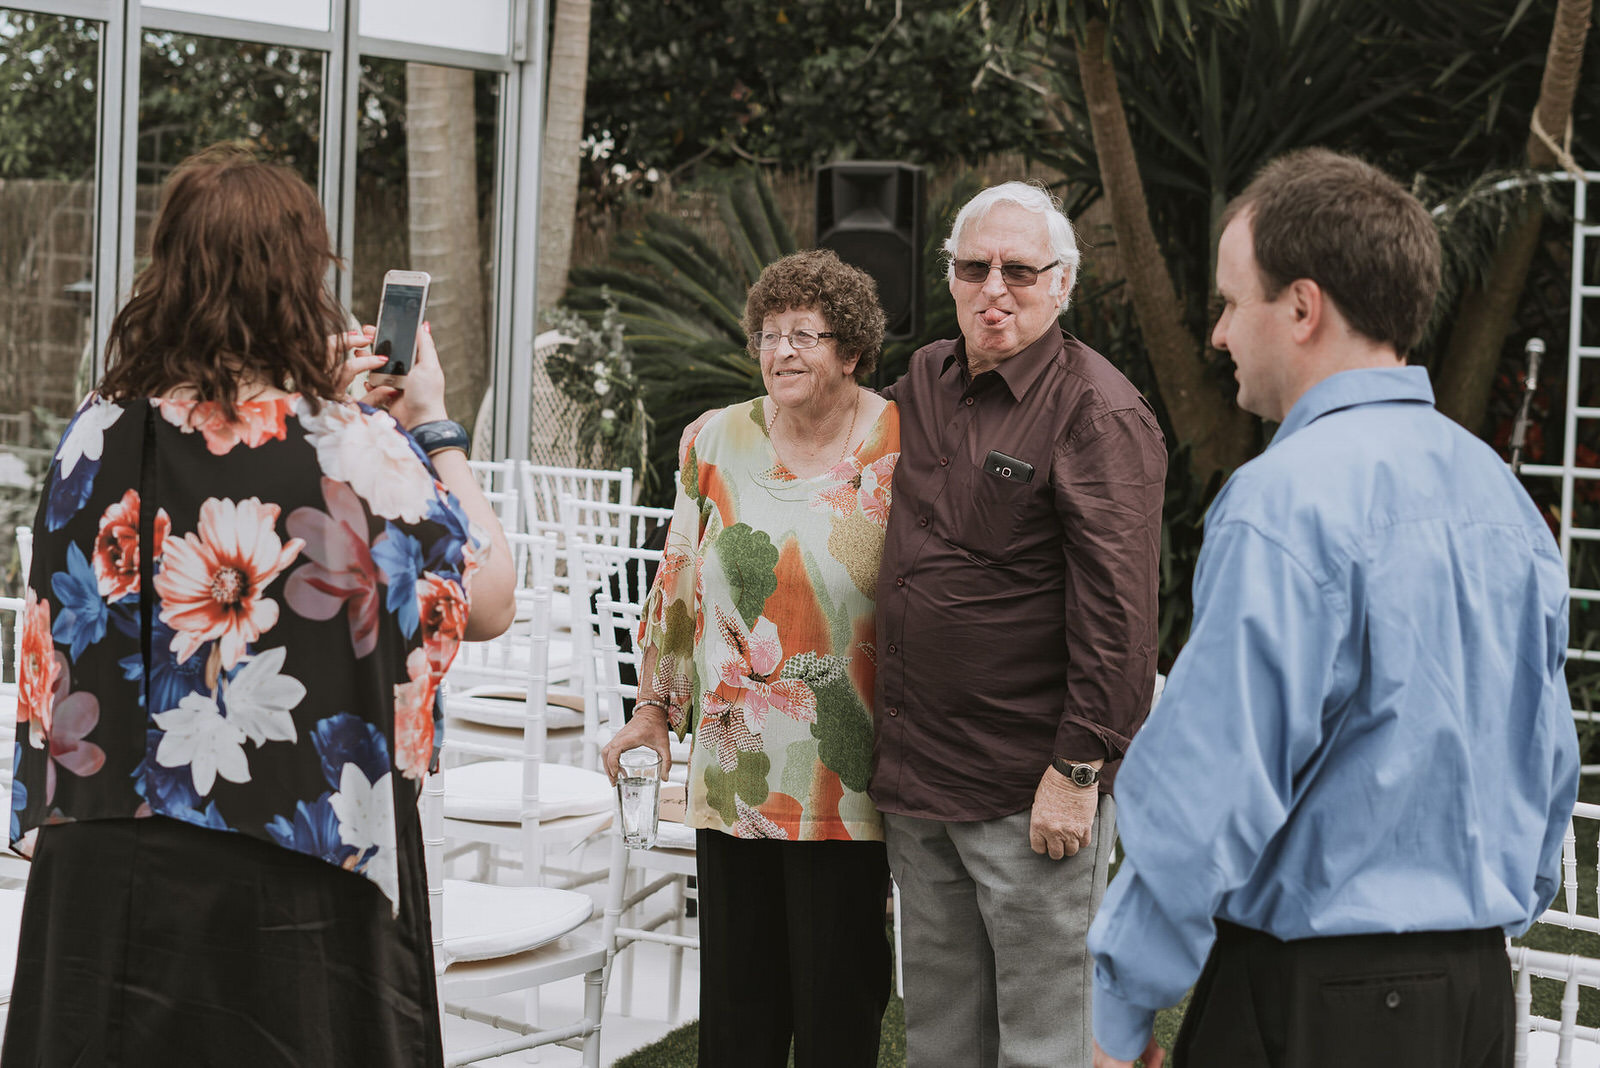 newfound-at-glendowie-auckland-wedding-photographers-074